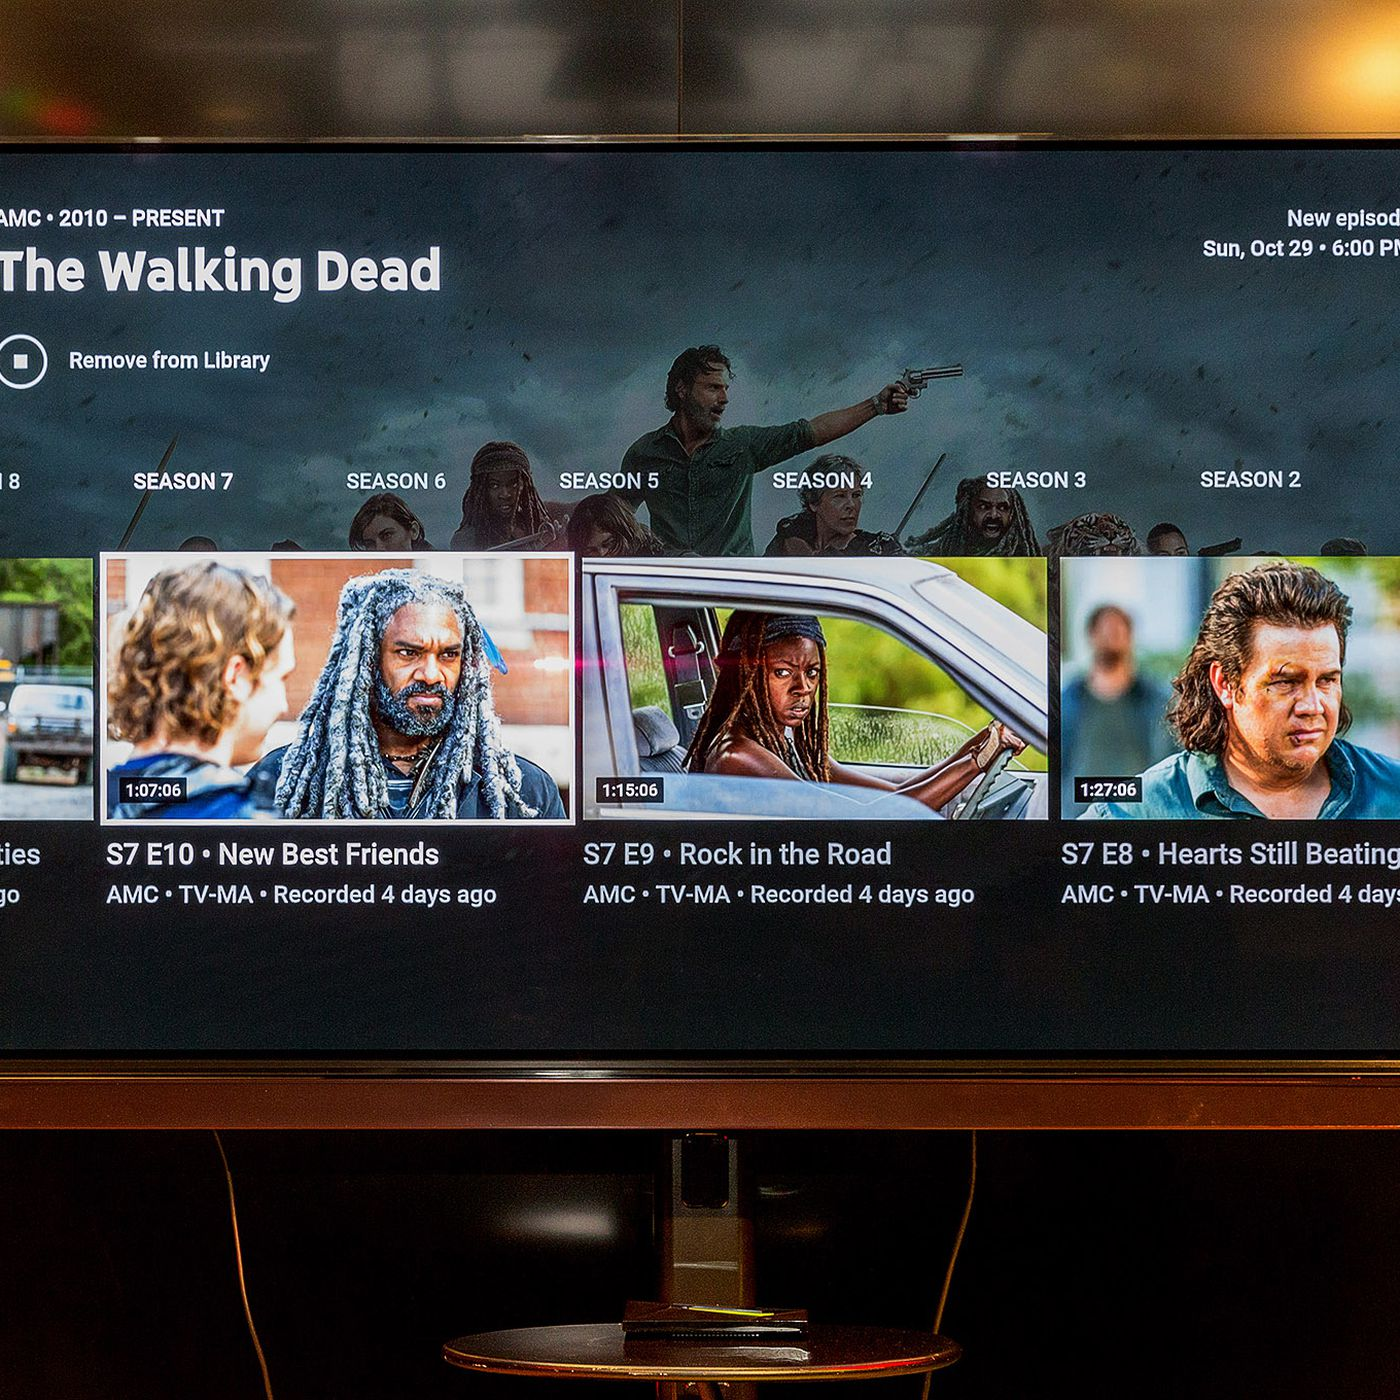 YouTube TV is rolling out on Apple TV, Roku, Xbox One, and